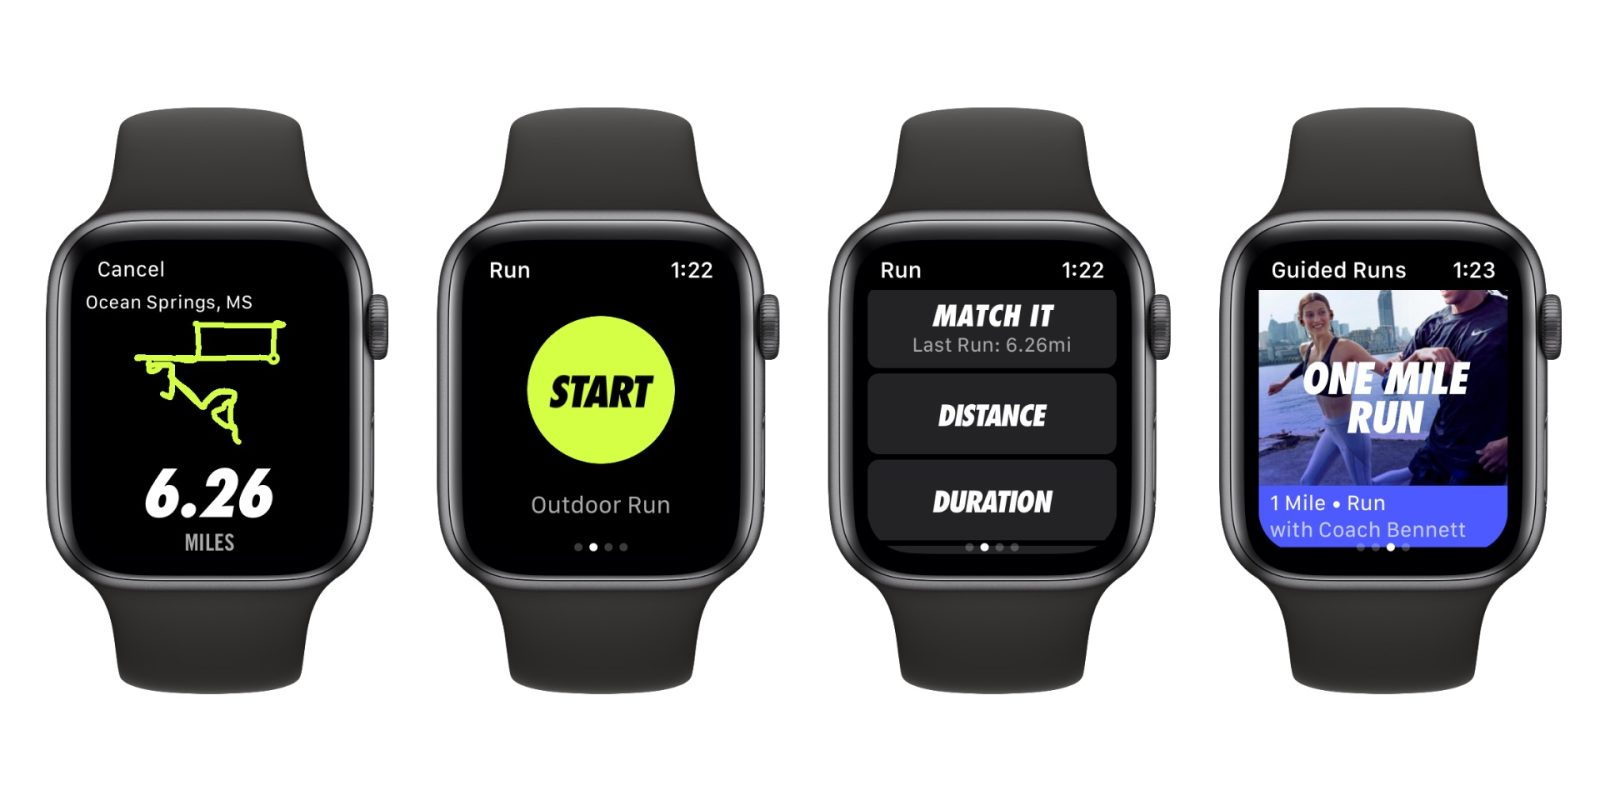 acre autor Mendicidad  Nike+ Run Club now optimized for Apple Watch Series 4 - 9to5Mac